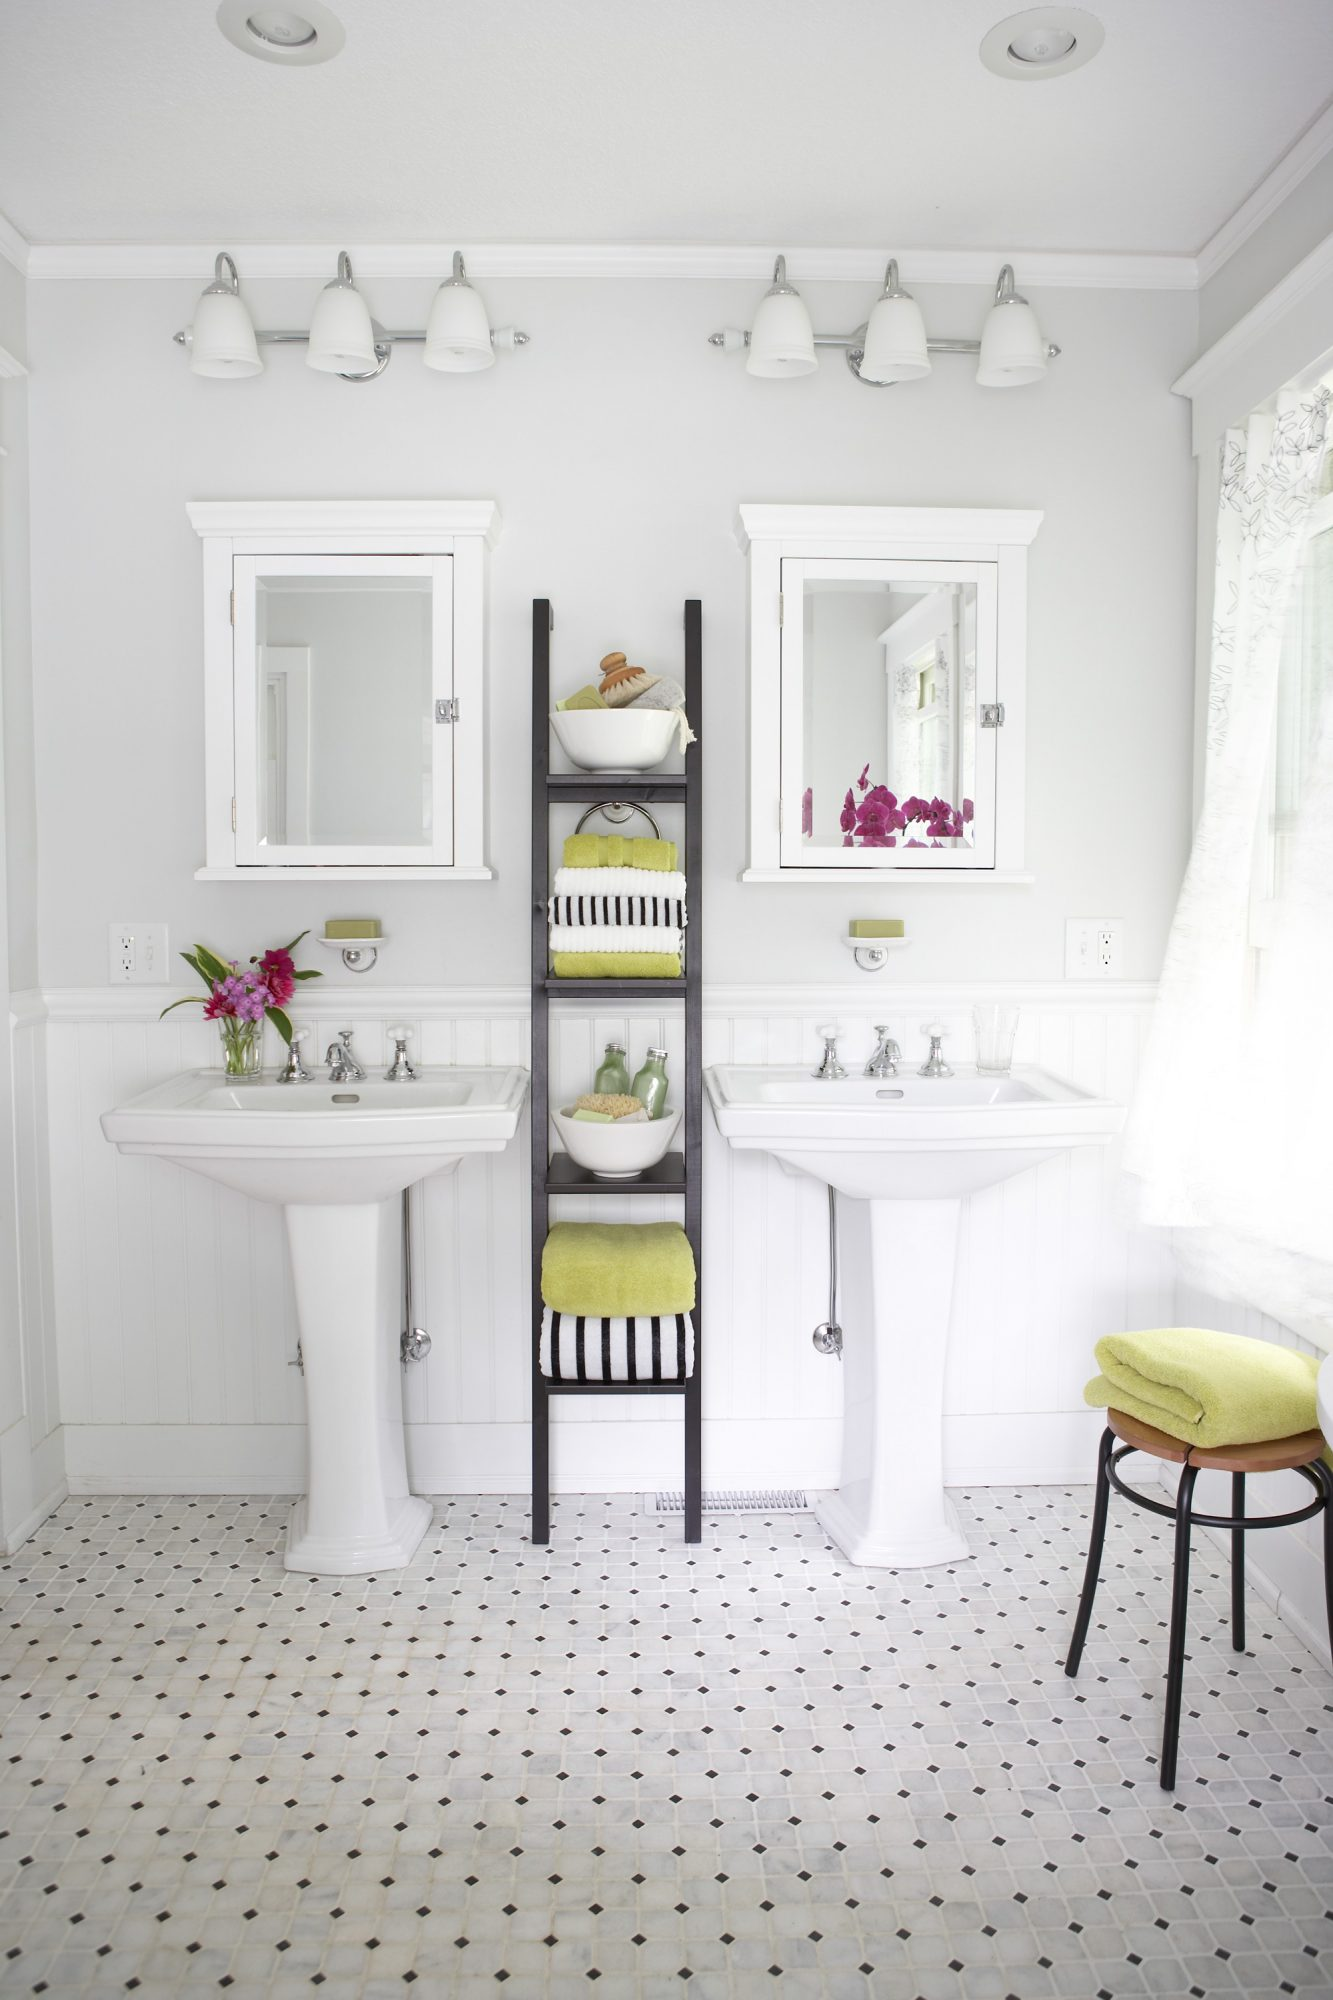 bathroom narrow dark shelves holding towels between dual pedestal sinks